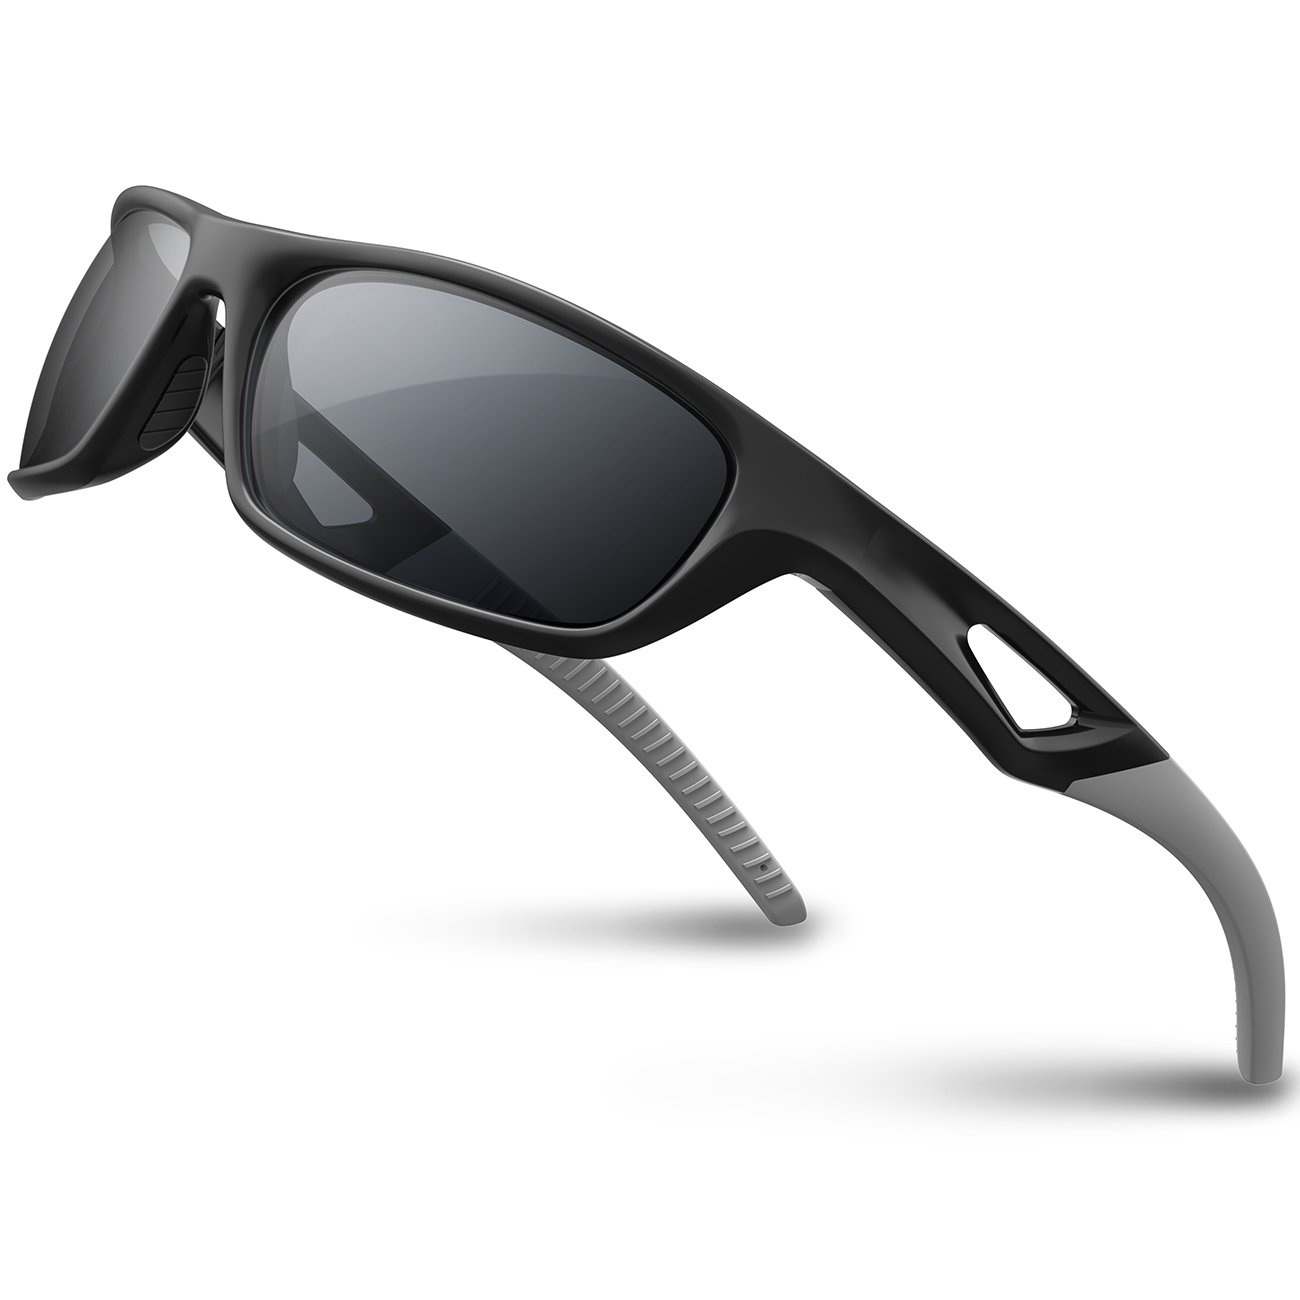 RIVBOS Polarized Sports Sunglasses Driving Sun Glasses Shades for Men Women Tr90 Frame for Cycling Baseball Running Rb831 Black&Grey by RIVBOS